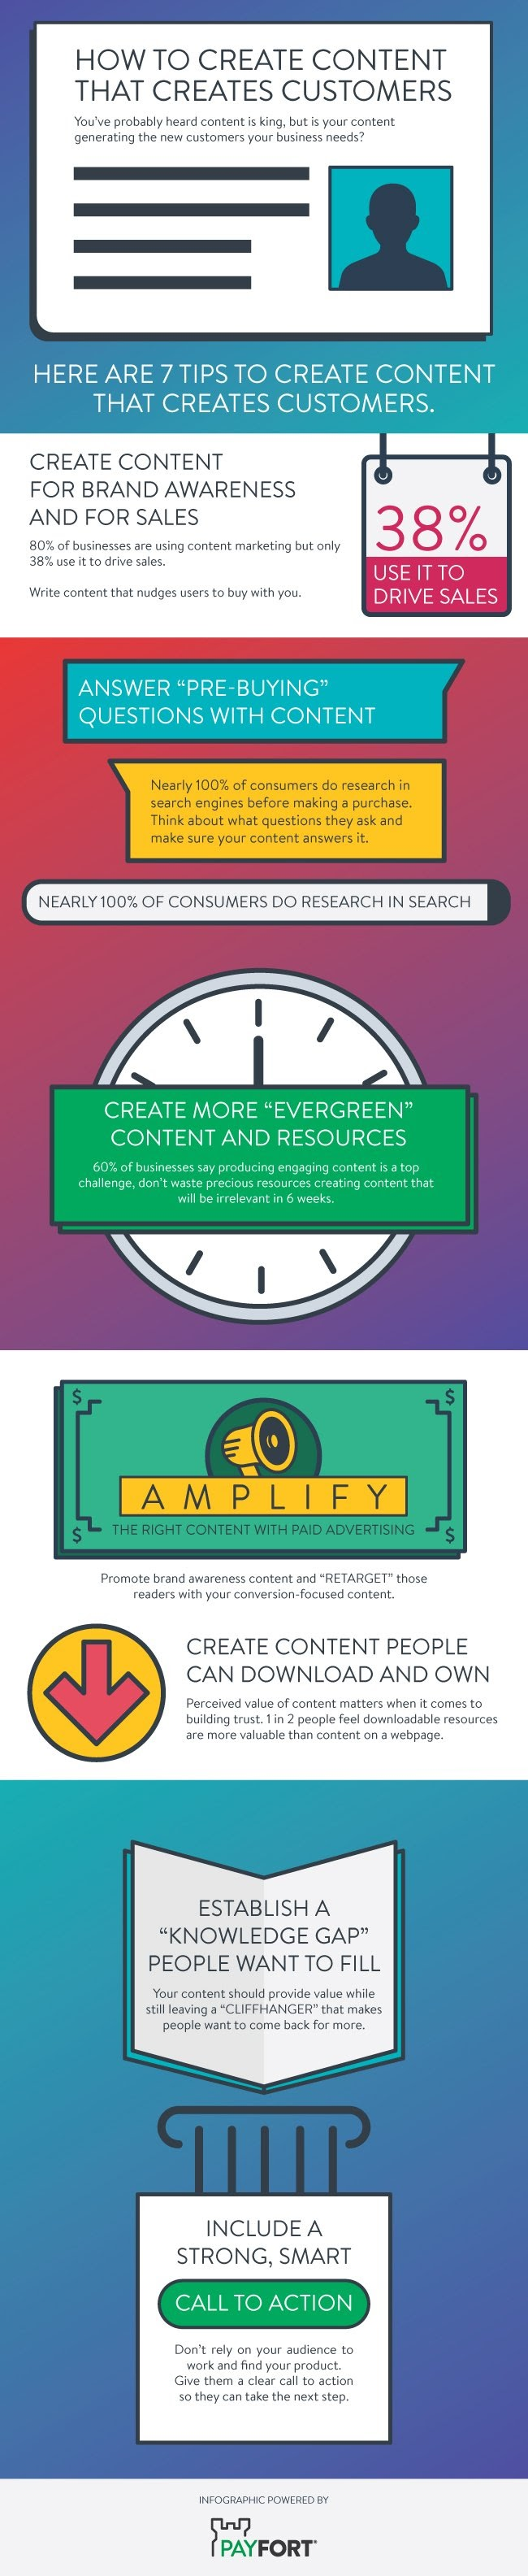 How To Create Content That Creates Customers - #infographic